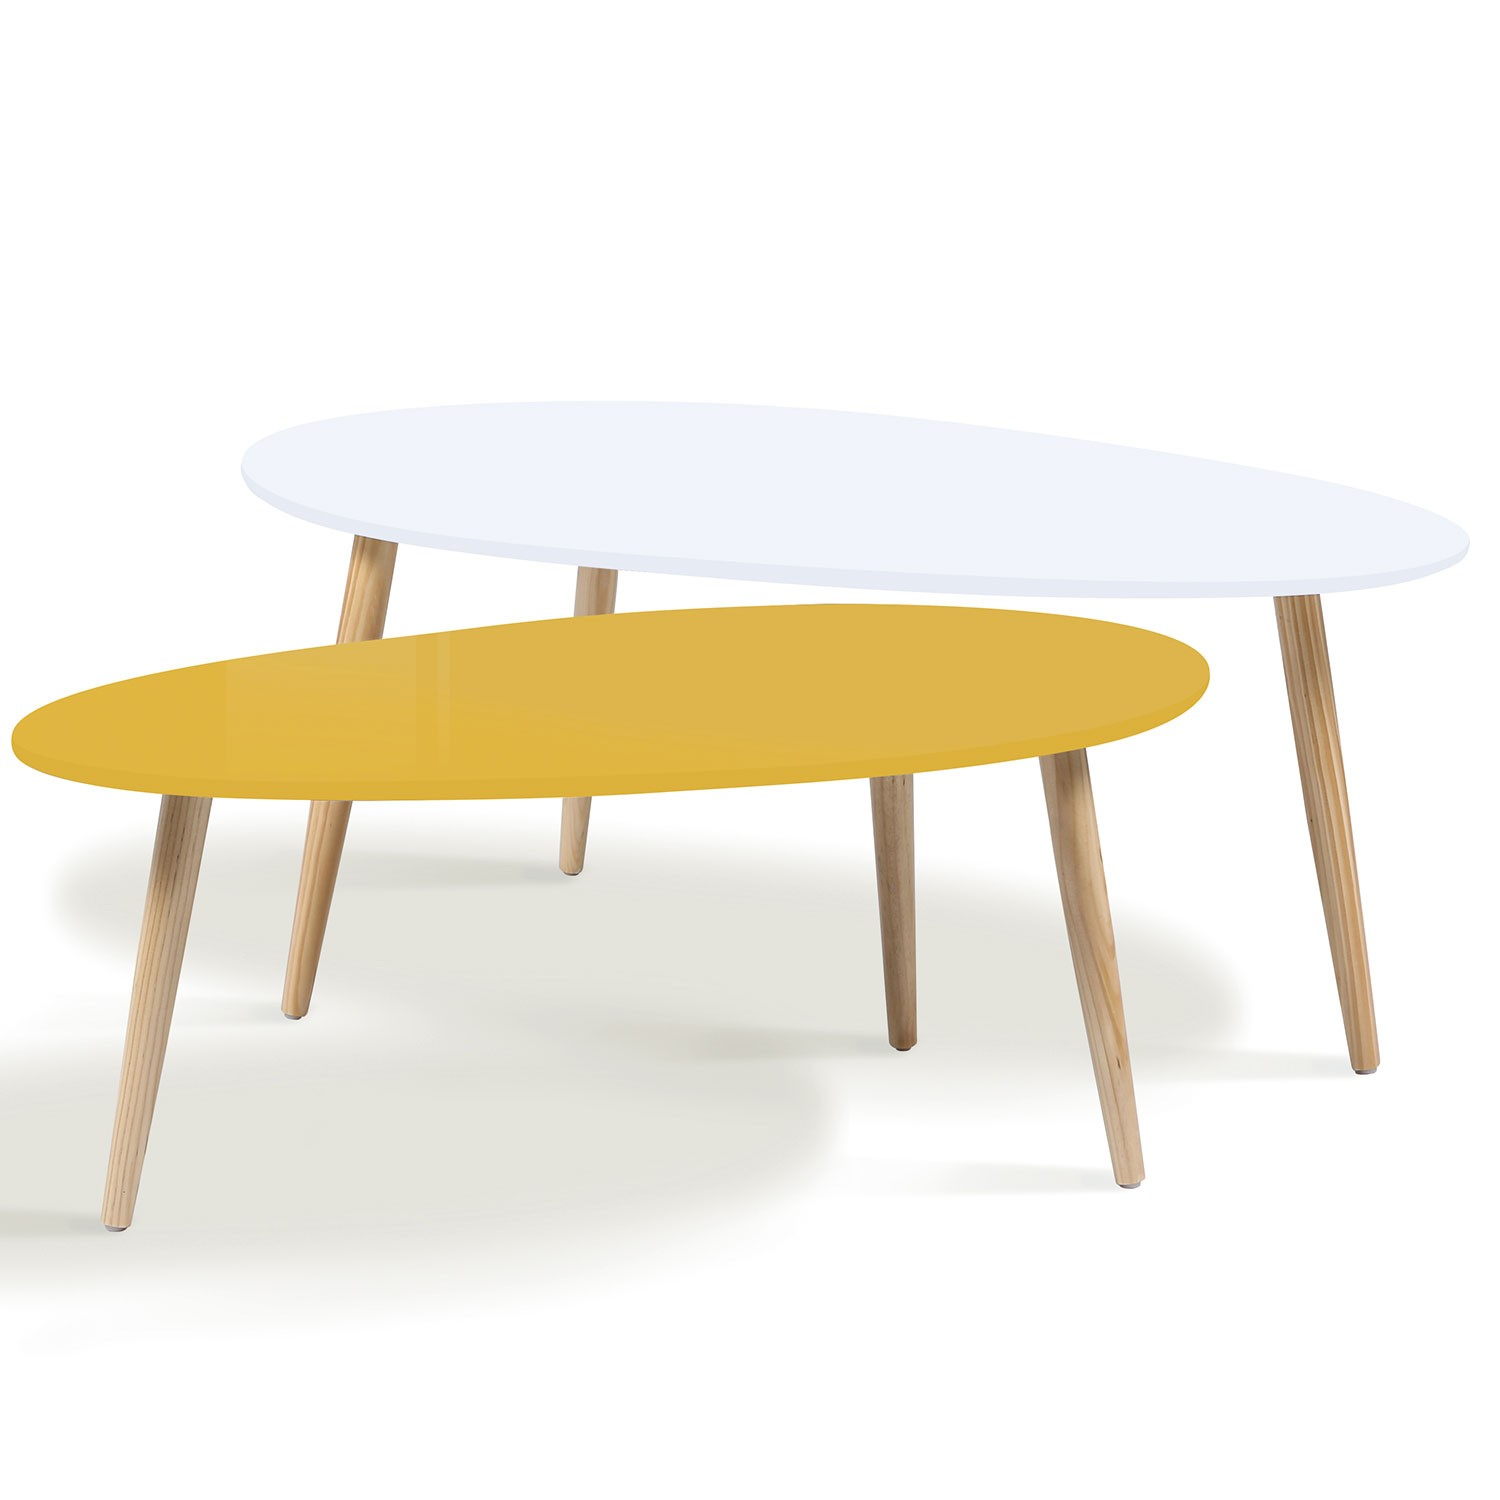 Lot de 2 tables basses gigognes laqu es jaune blanc - Table basse scandinave gigogne ...